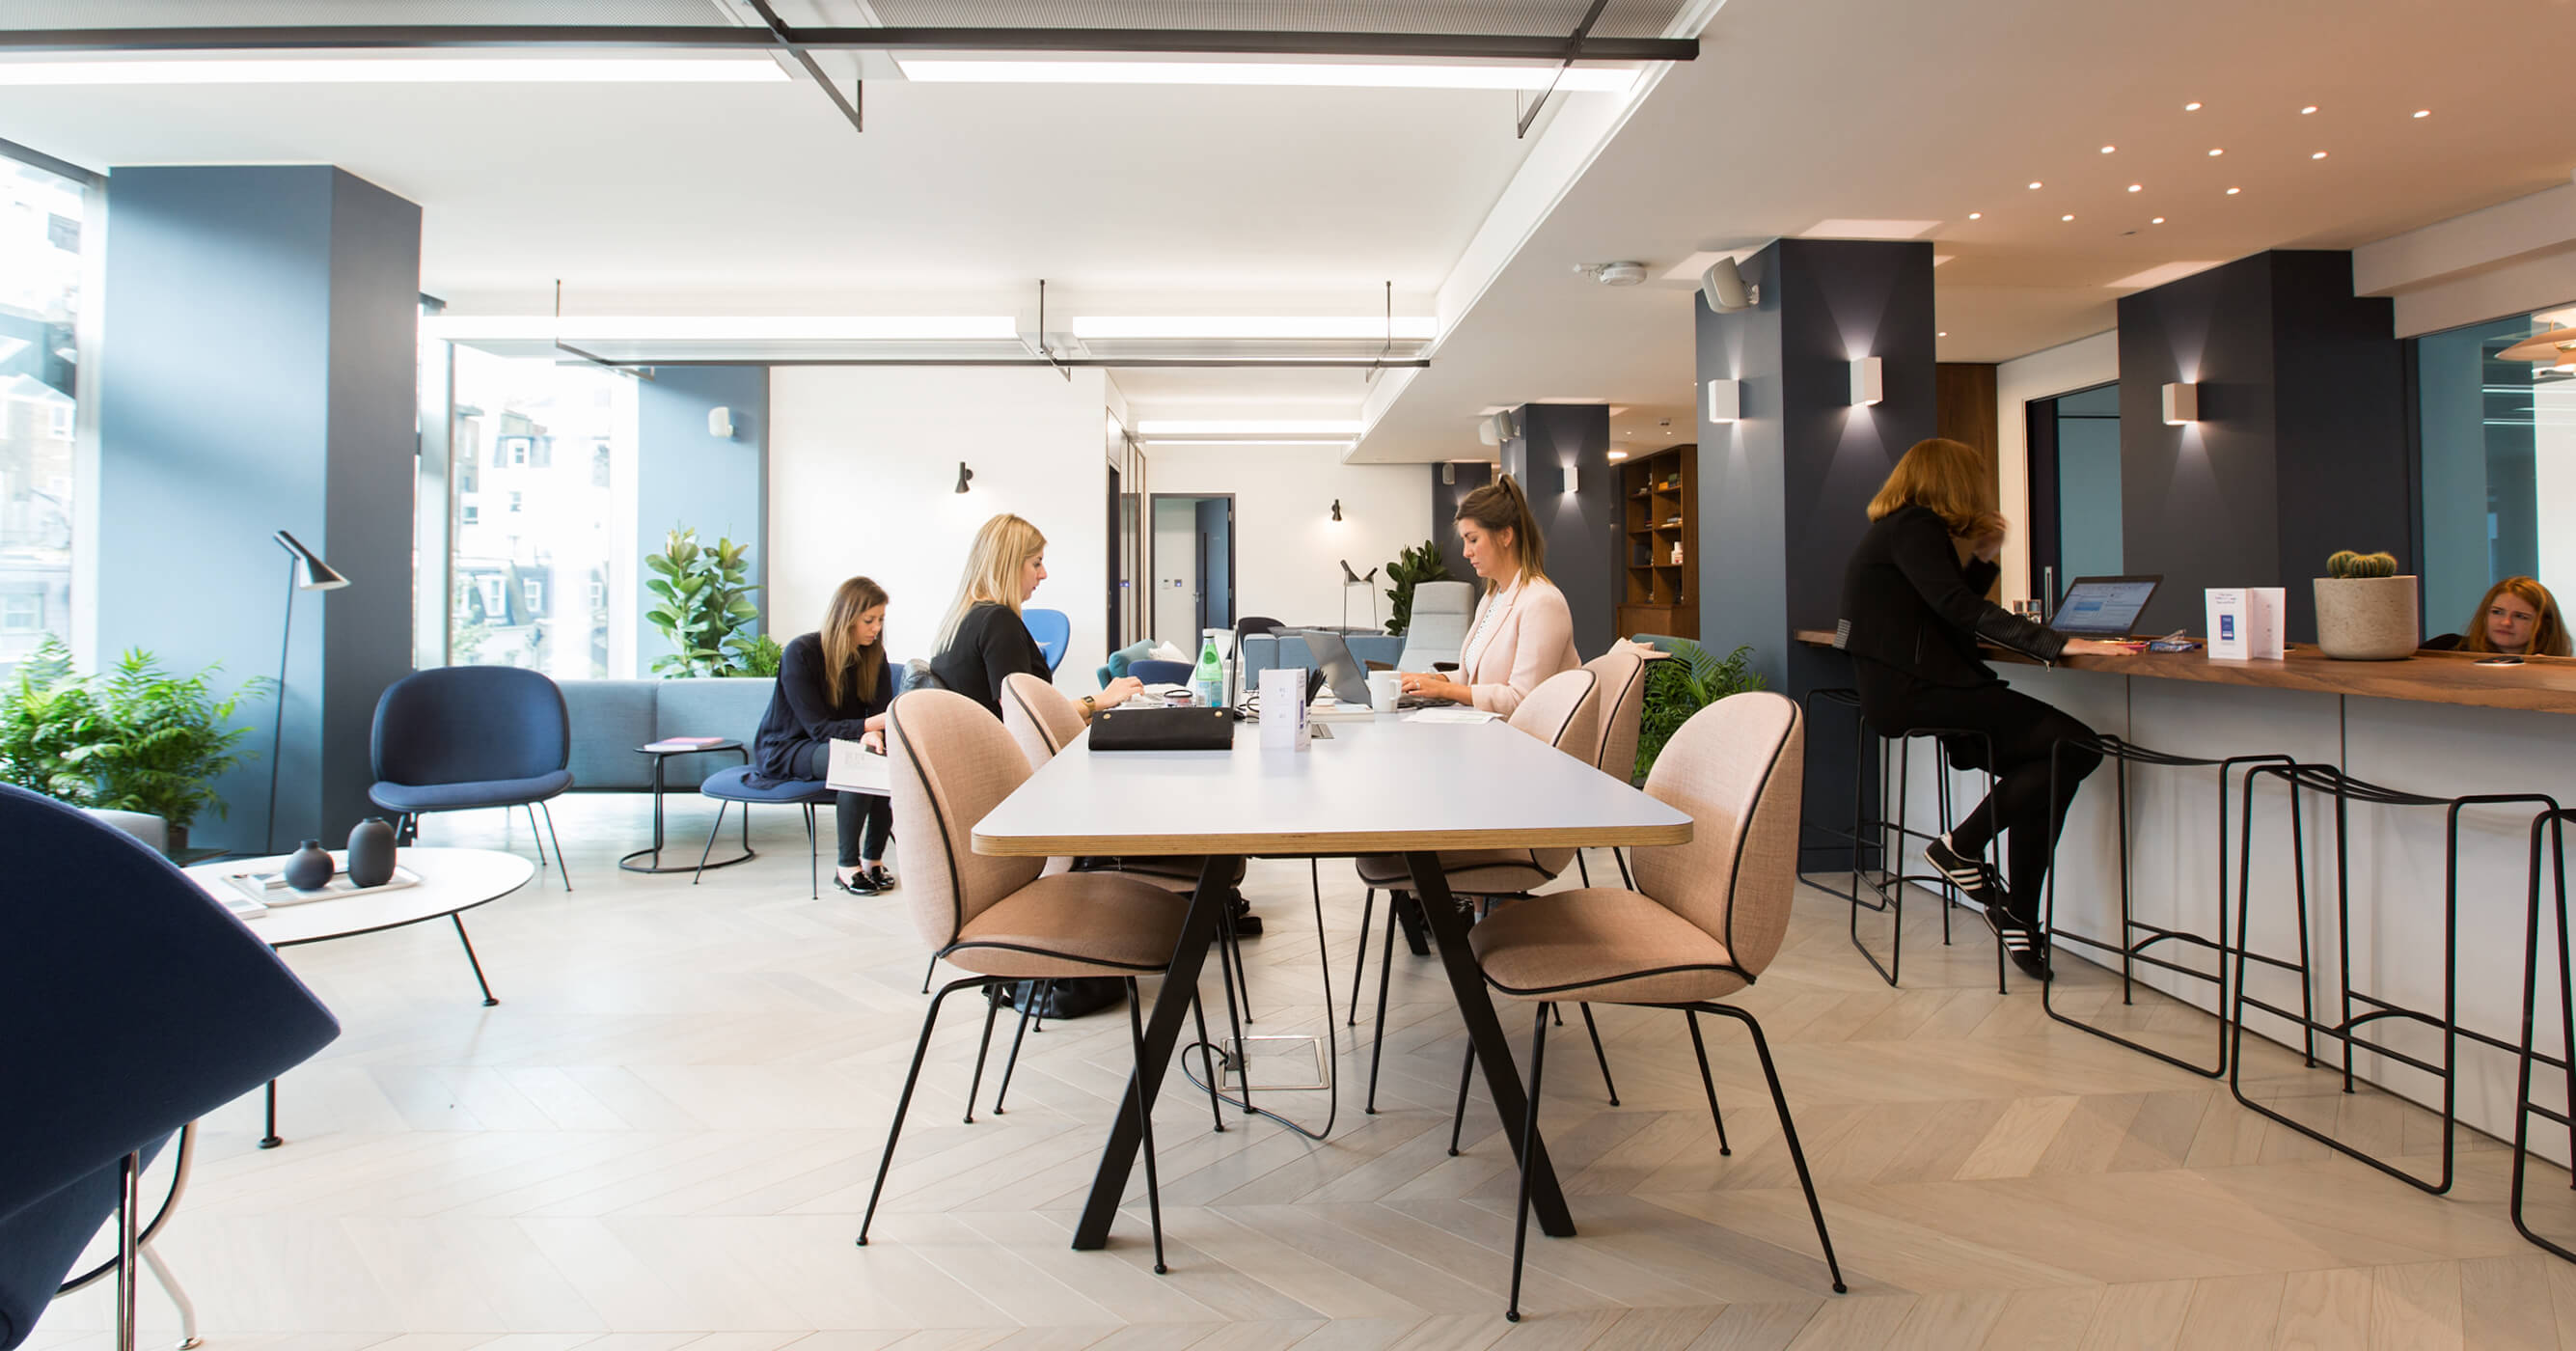 The Office Group - Paddington, London